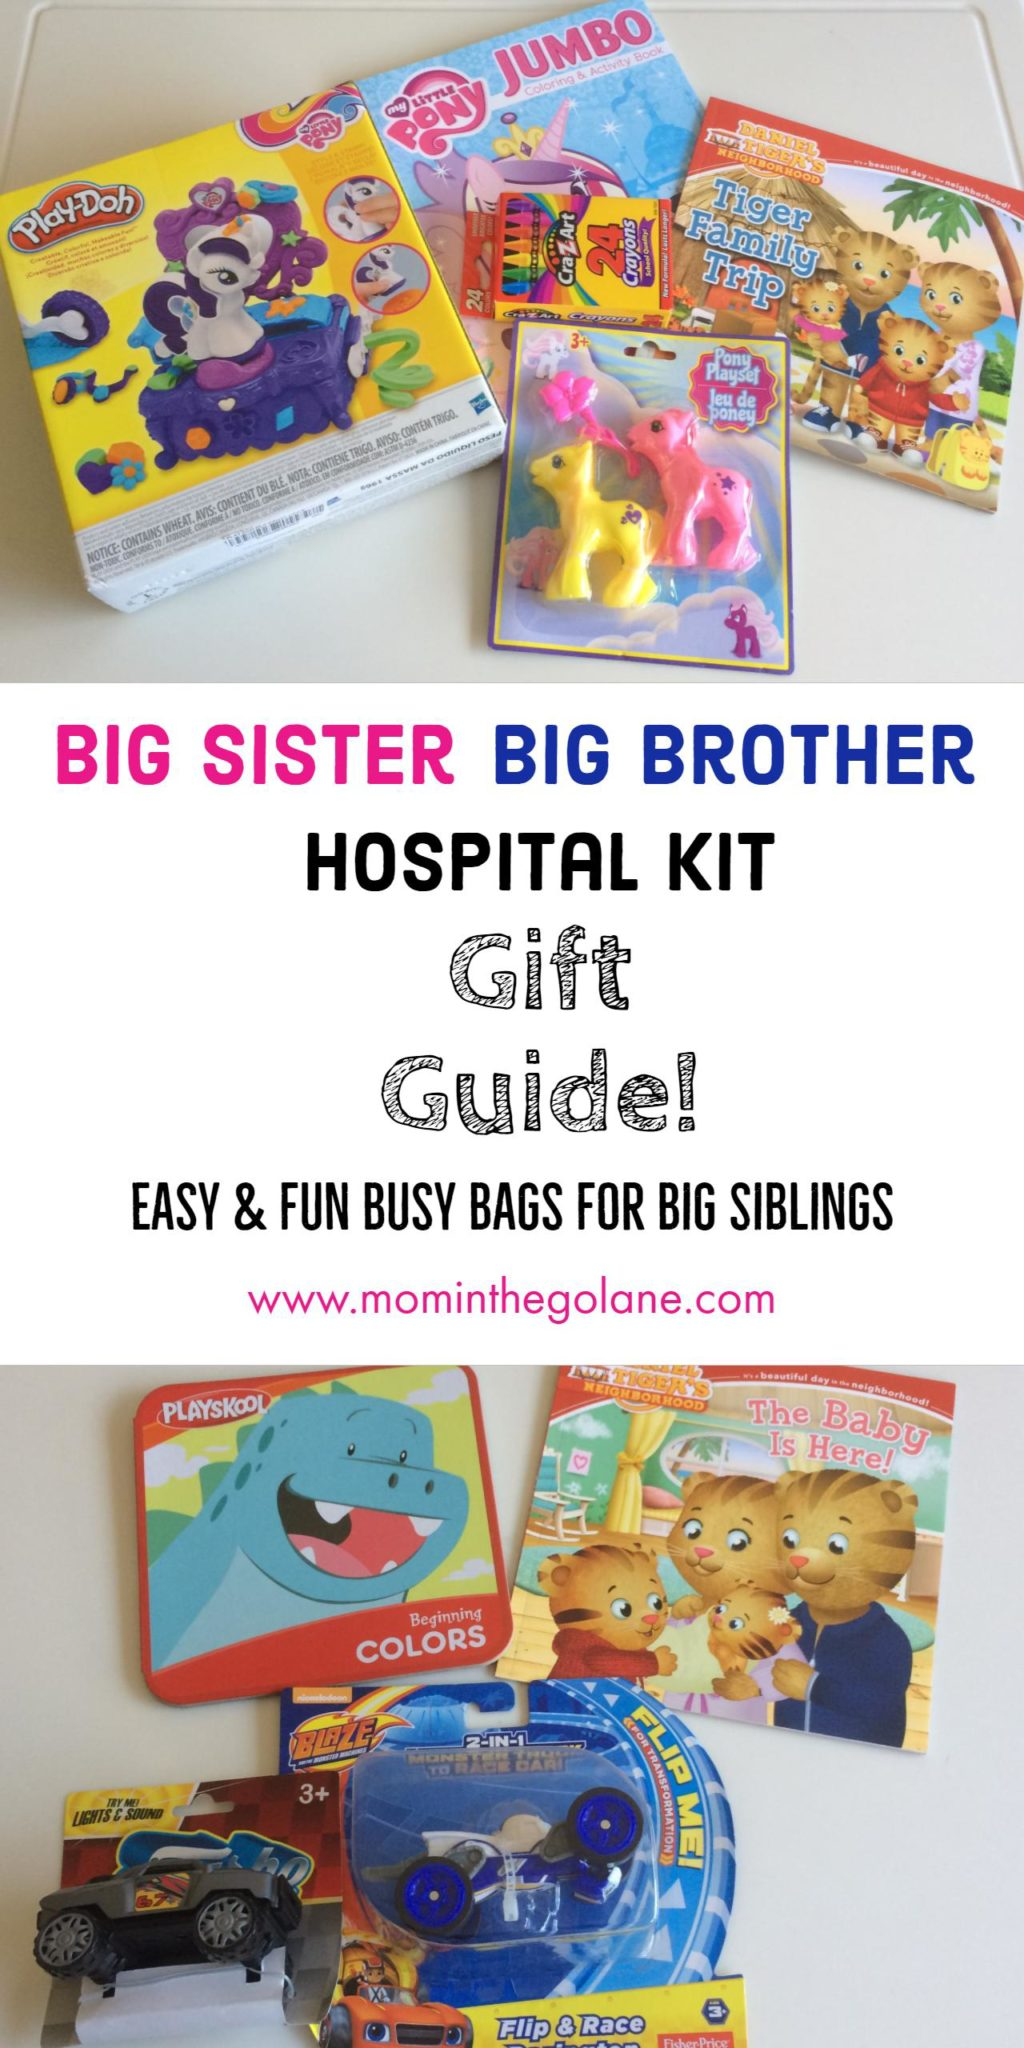 Big Sister/Big Brother Hospital Kit Gift Guide! - Mom In The GO Lane